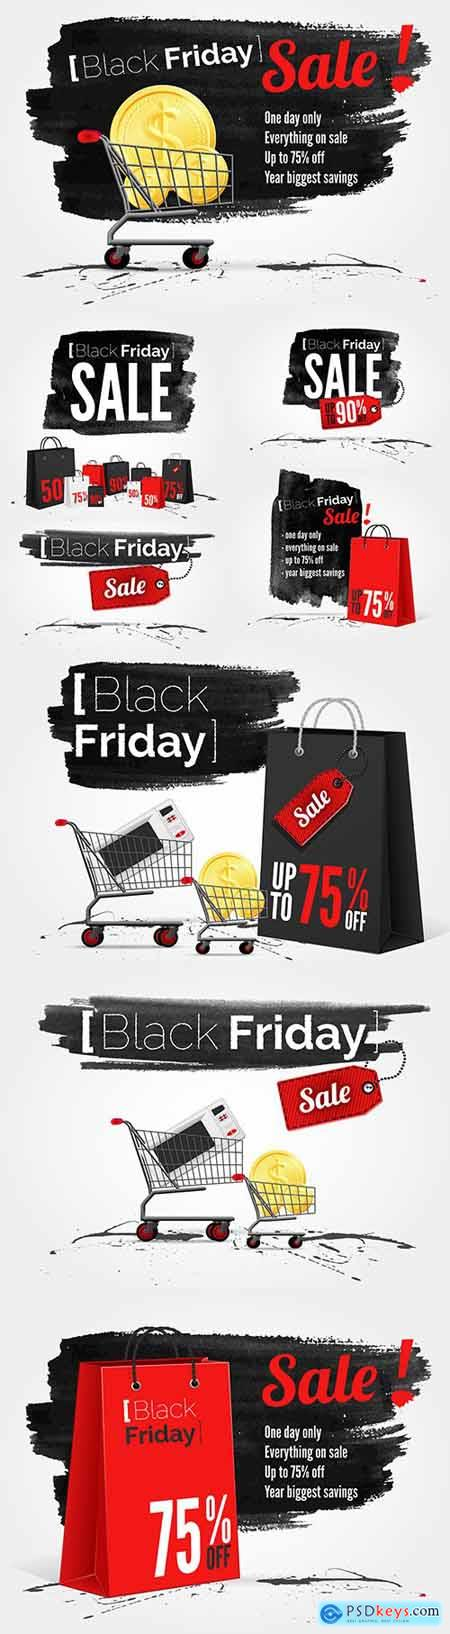 Black Friday watercolor banner with inks of ink and shopping bag